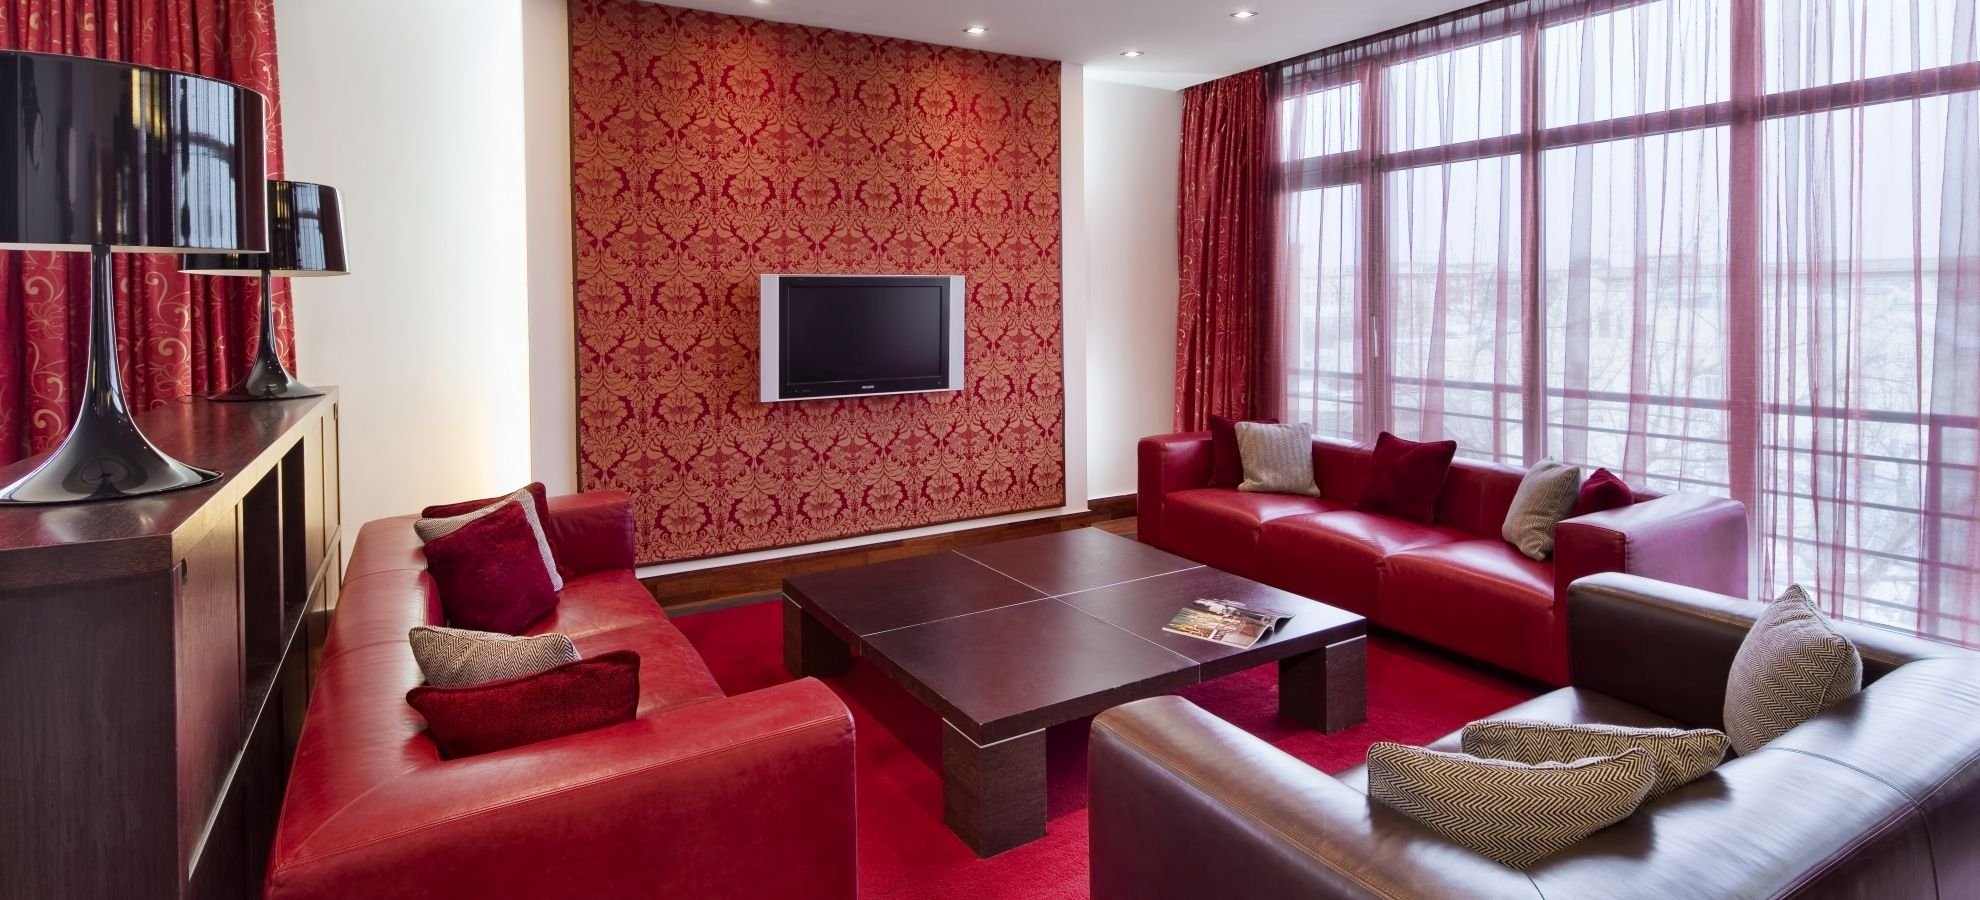 Mamaison-Hotel-Pokrovka-Moscow-Chairman-Suite-4.jpg